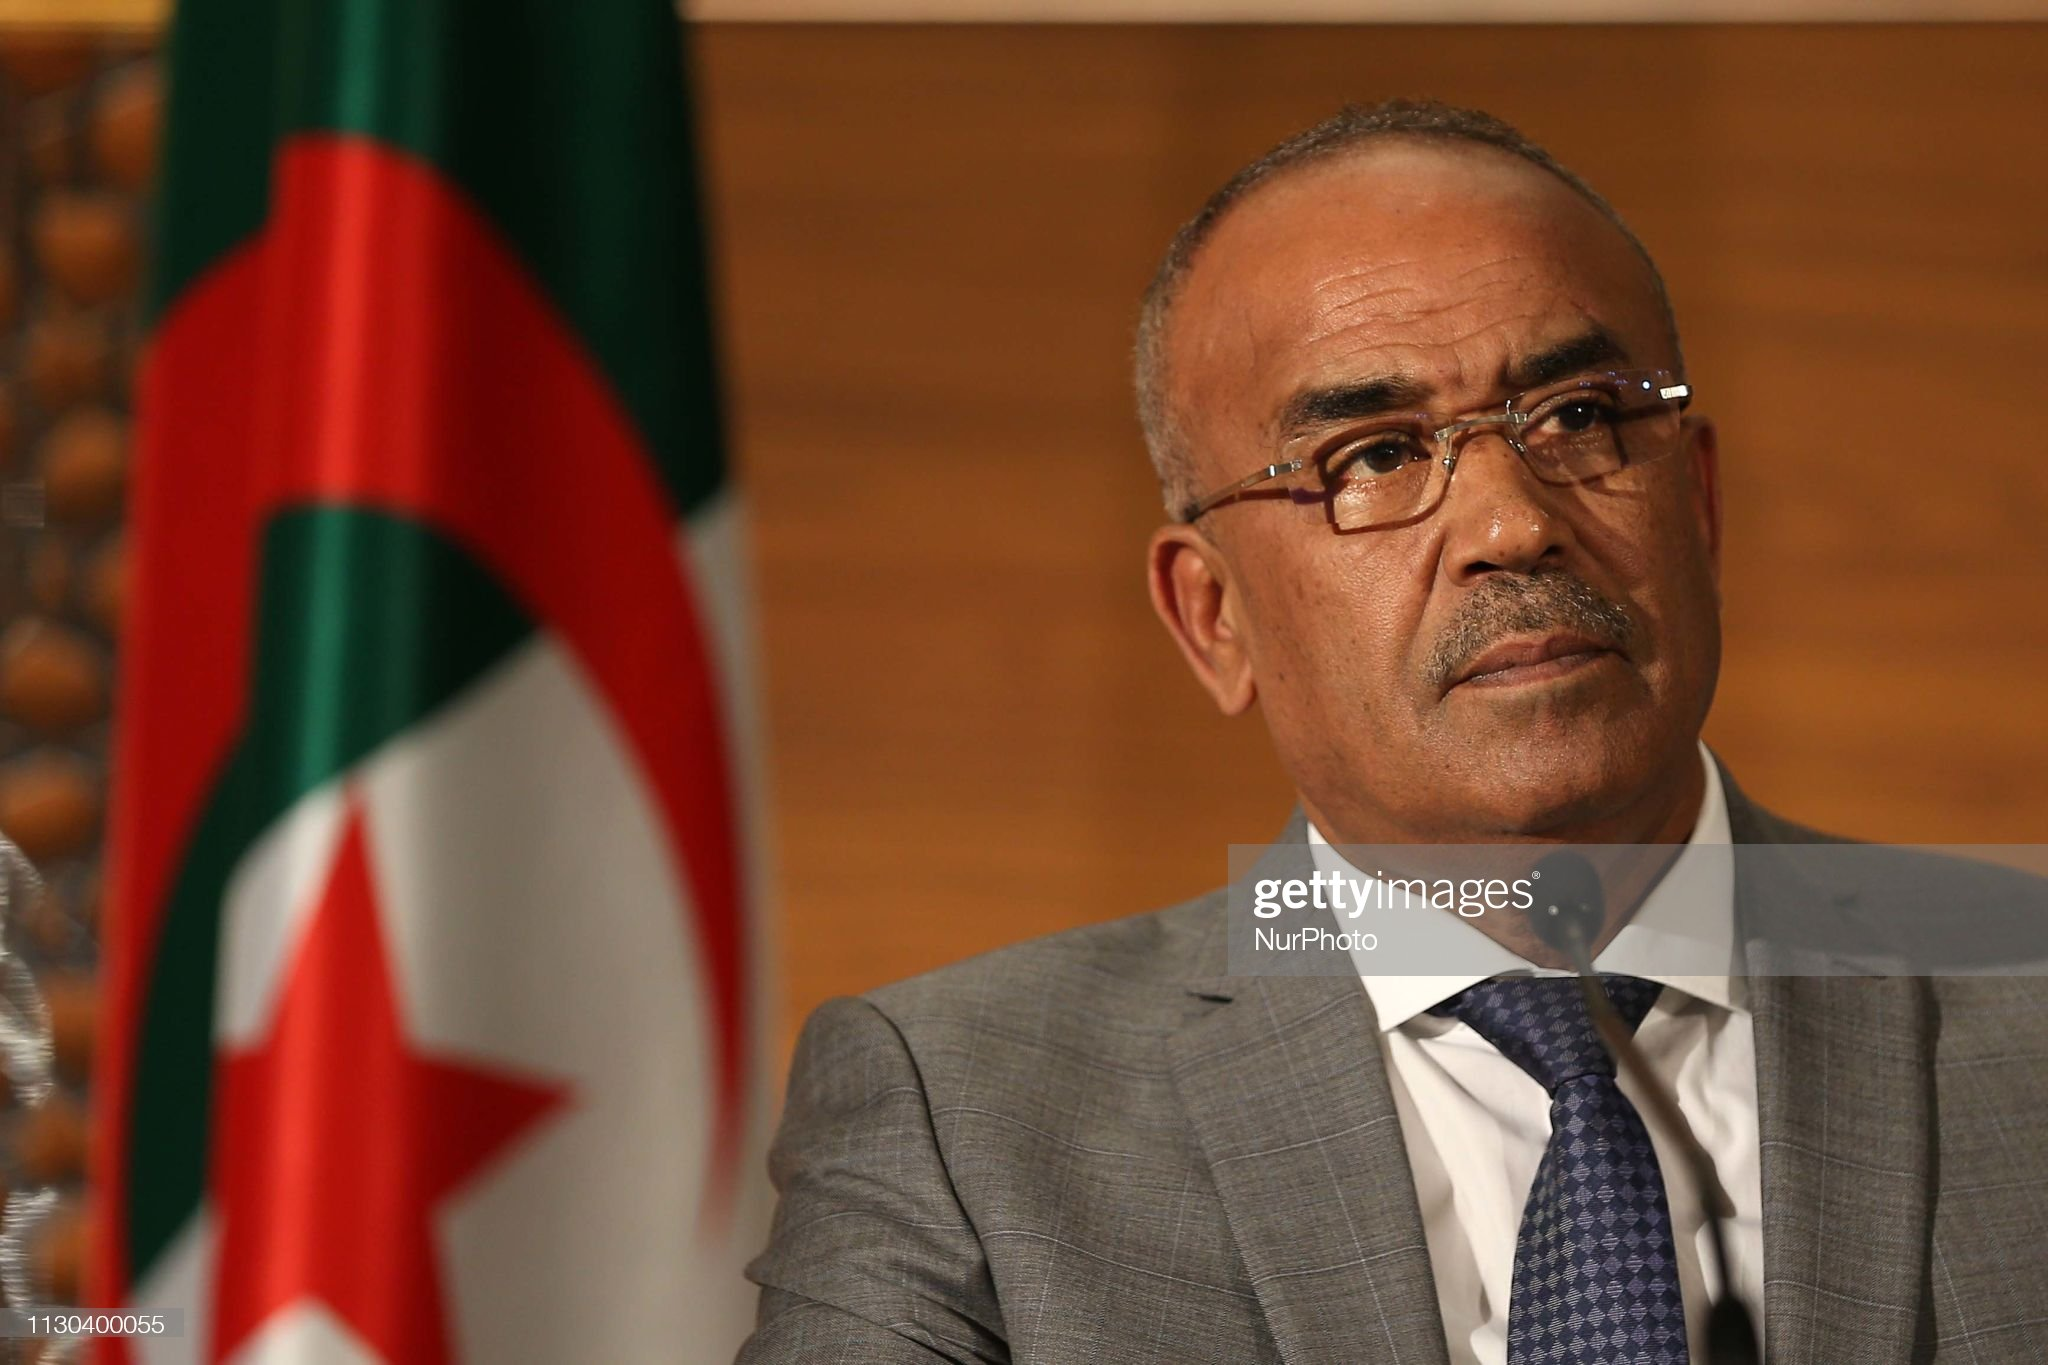 Norteafricanos The-new-prime-minister-noureddine-bedoui-hosts-a-press-conference-in-picture-id1130400055?s=2048x2048